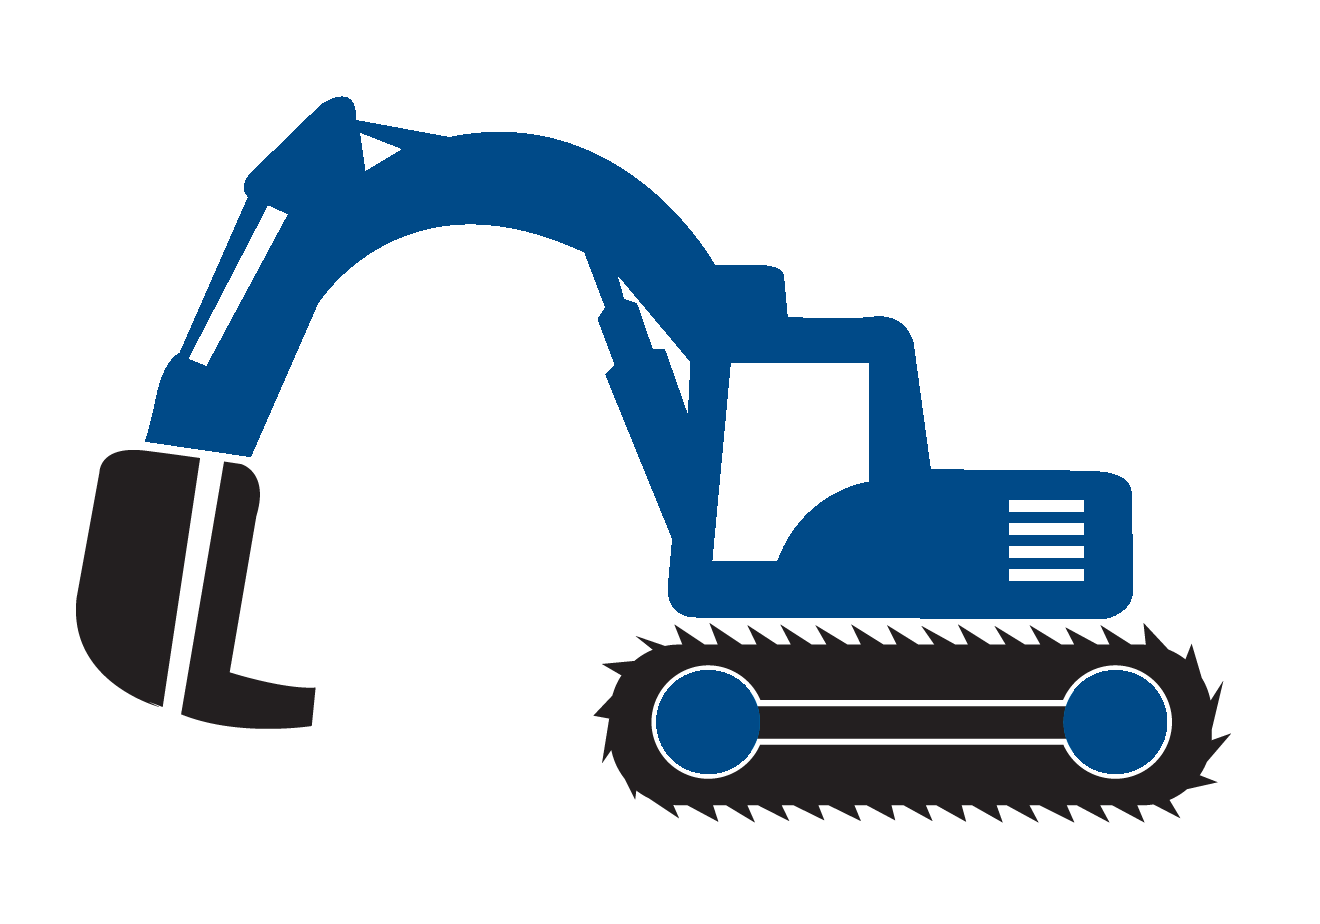 Contractor clipart construction equipment tool. Contractors rwc insurance advantage